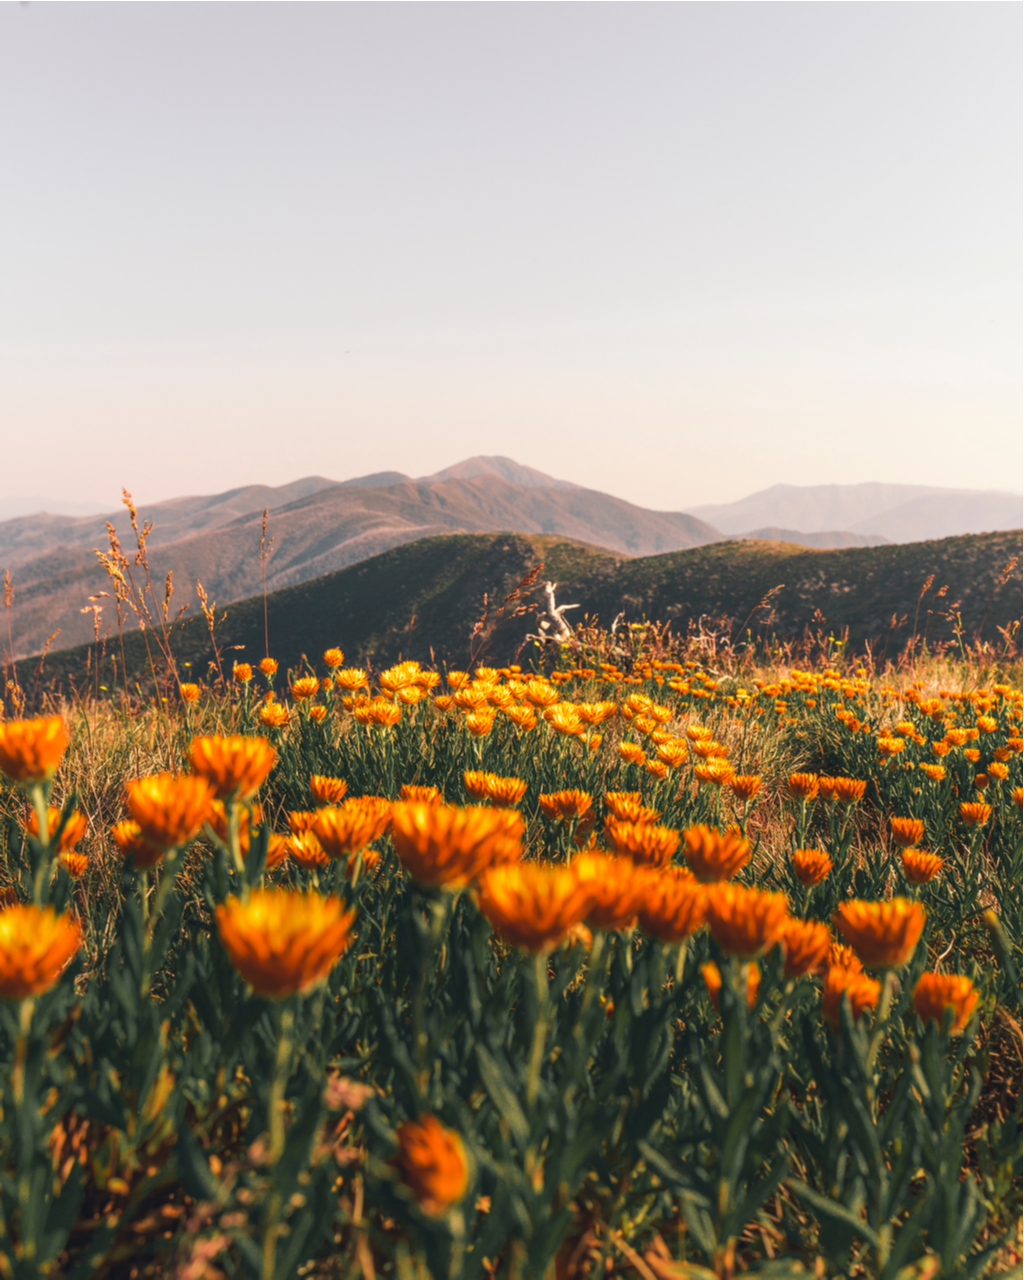 aesthetic visual landscape why important partir shutterstock translated